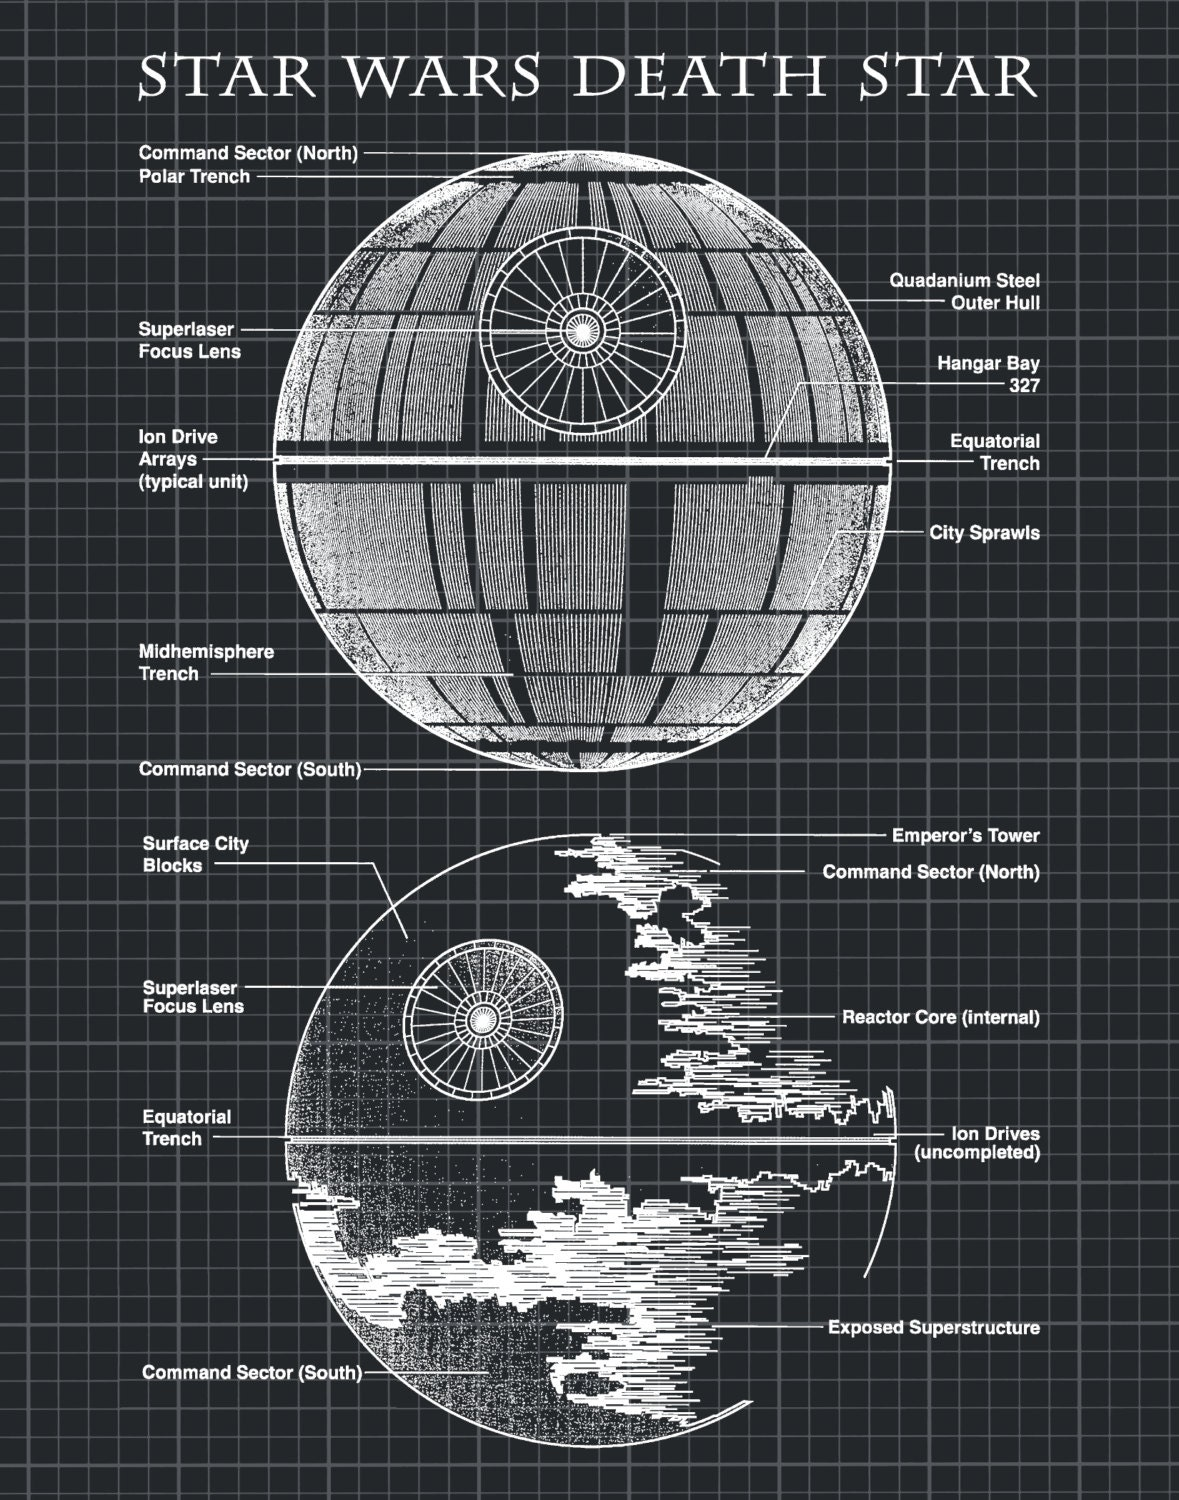 wall schematic engineering diagram star wars death star drawing art print wall poster wall schematic wiring diagram 110v electrical #7